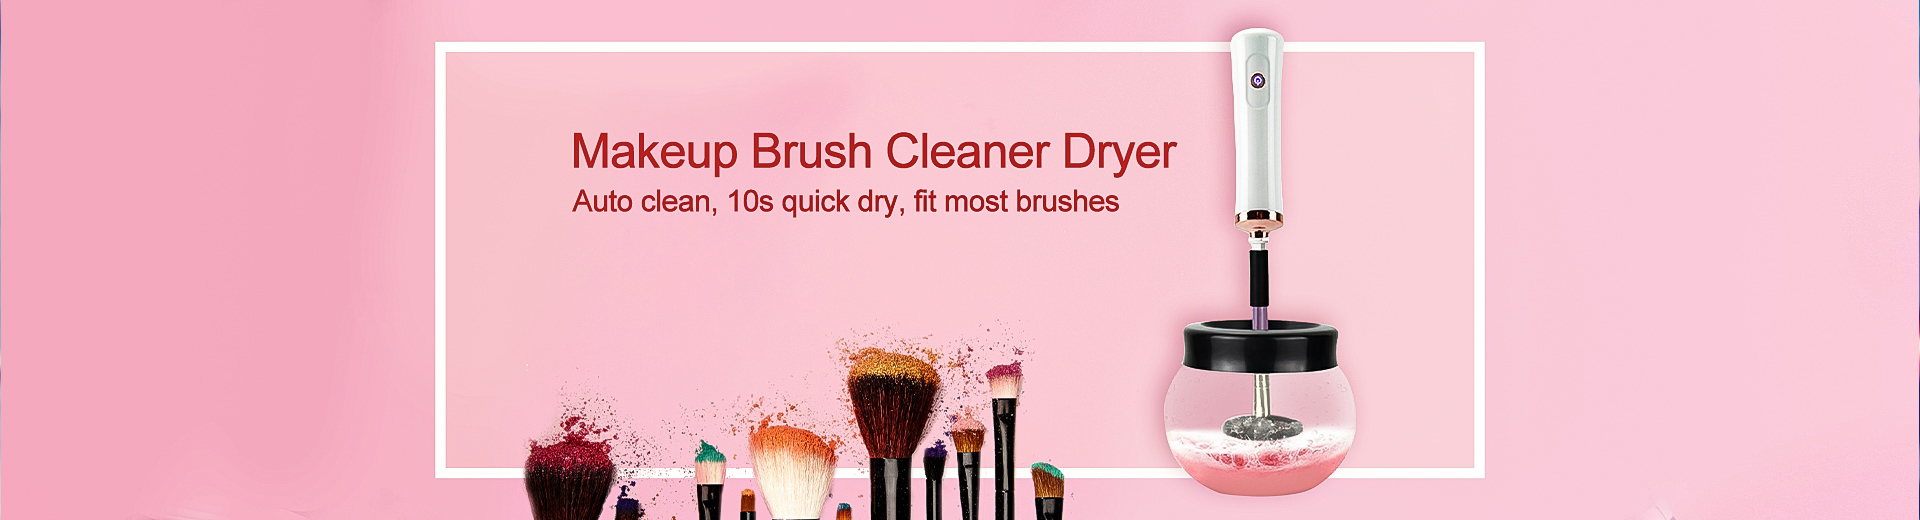 Makeup Brush Cleaner Dryer